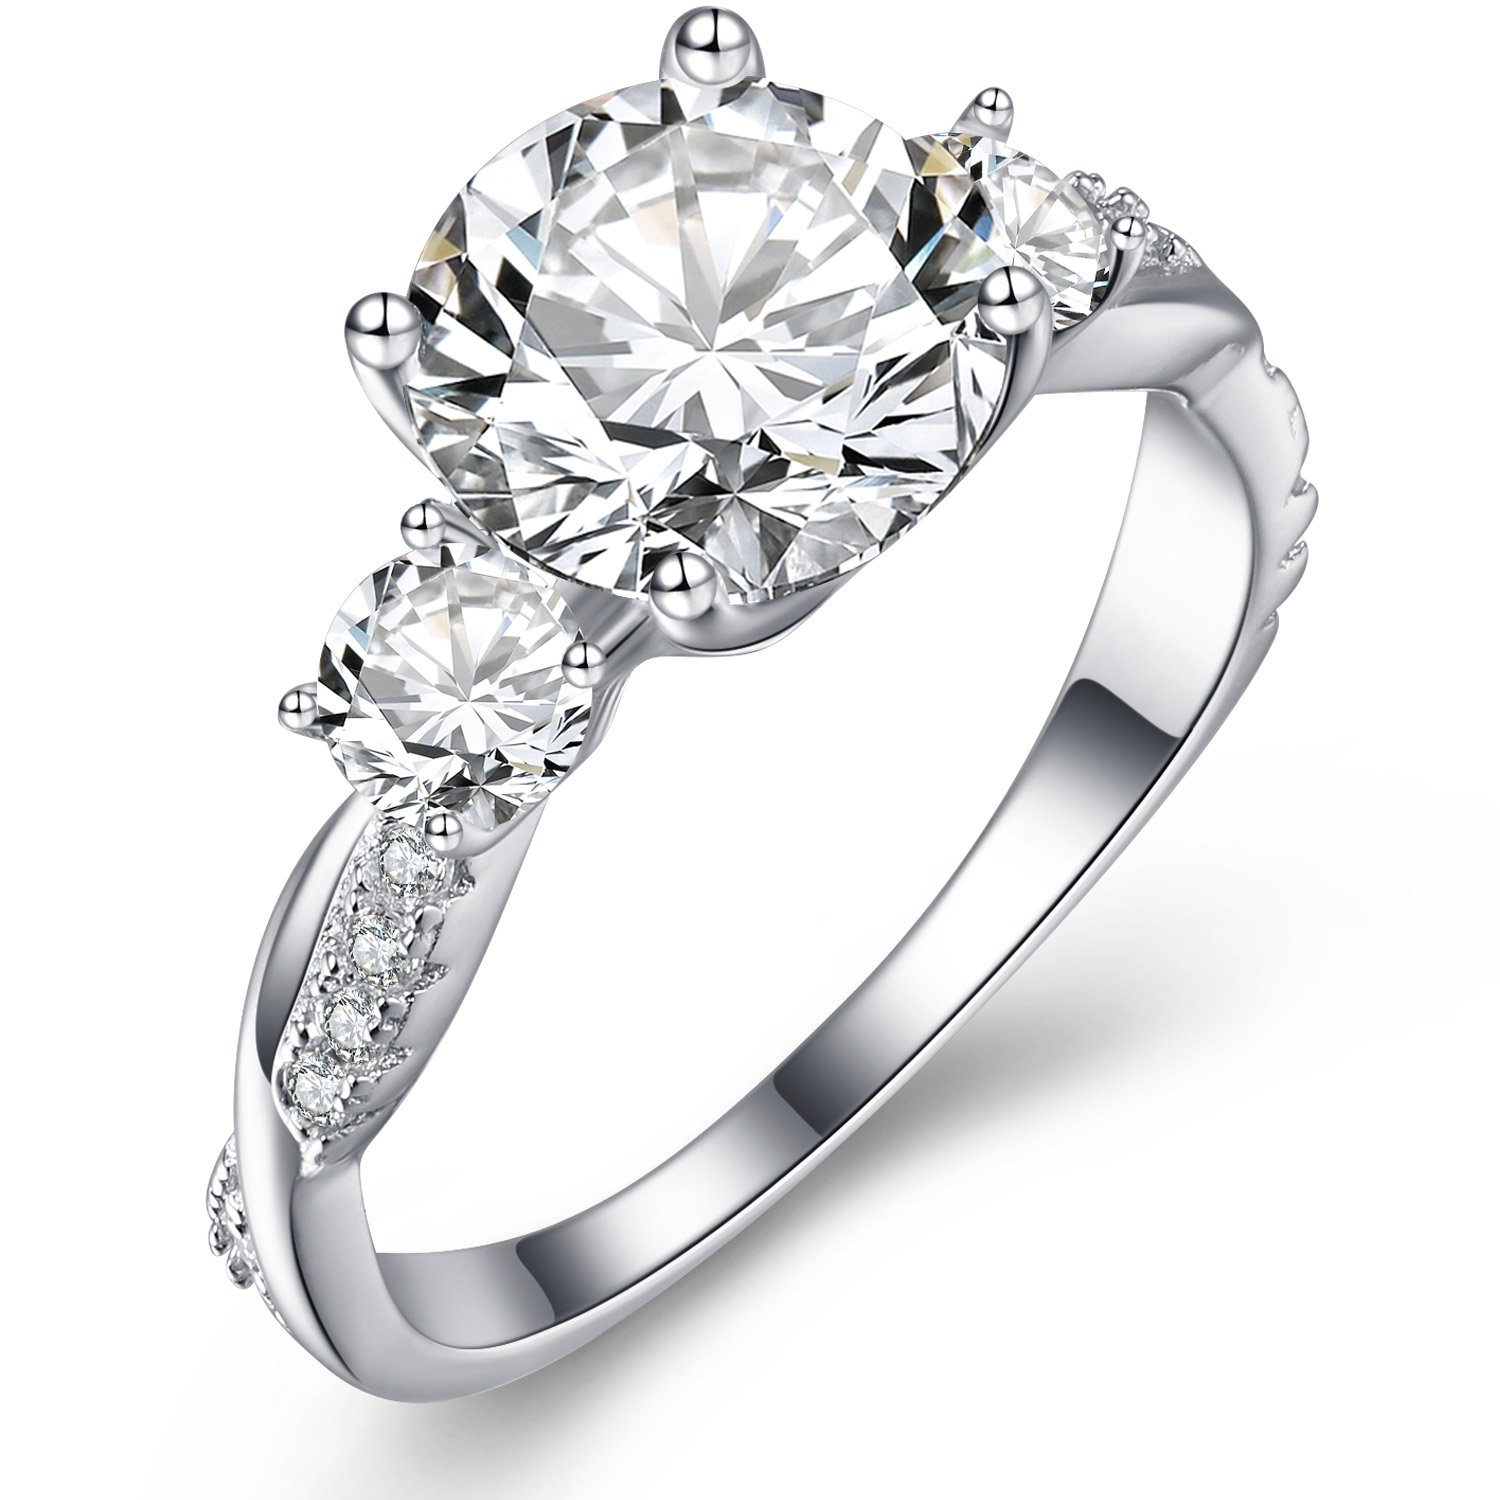 Vibrille Sterling Silver Twisted Vine Round Three Stone Cubic Zirconia Engagement Ring for Women Size 10